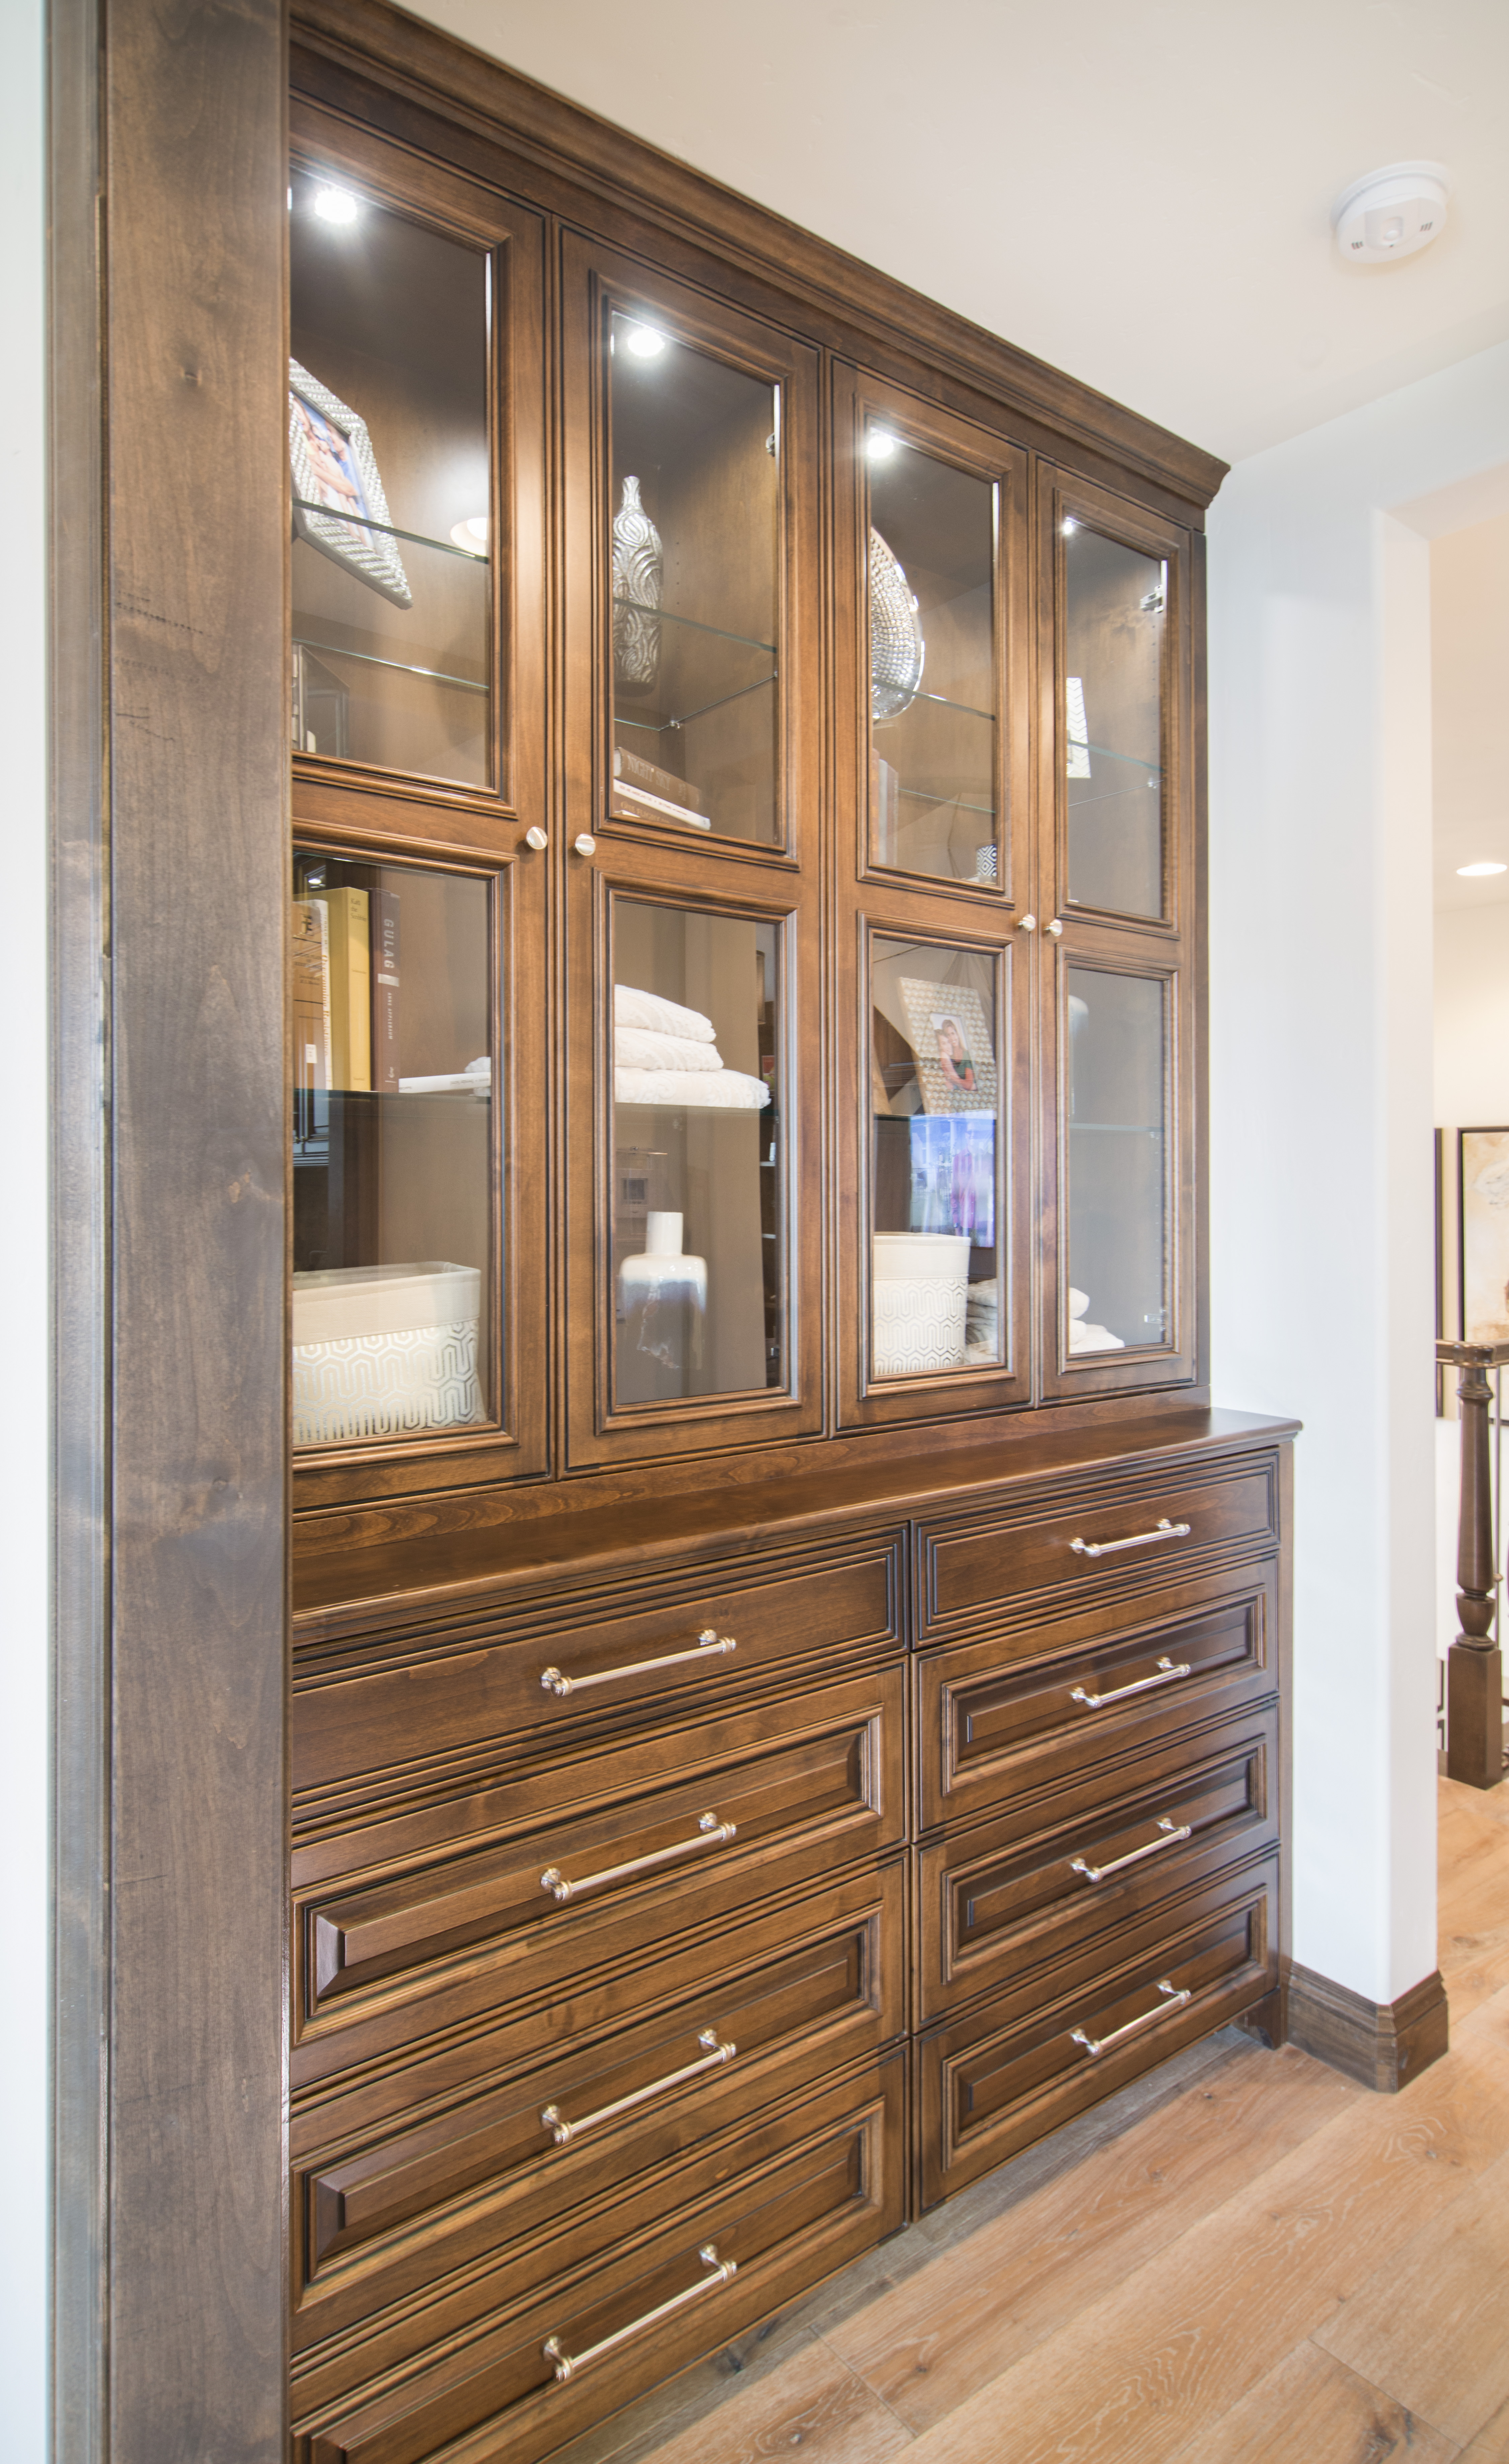 Beautiful Traditional Built-In with Glass Doors, Glass Shelves and Stainless Steel Knobs - Pulls